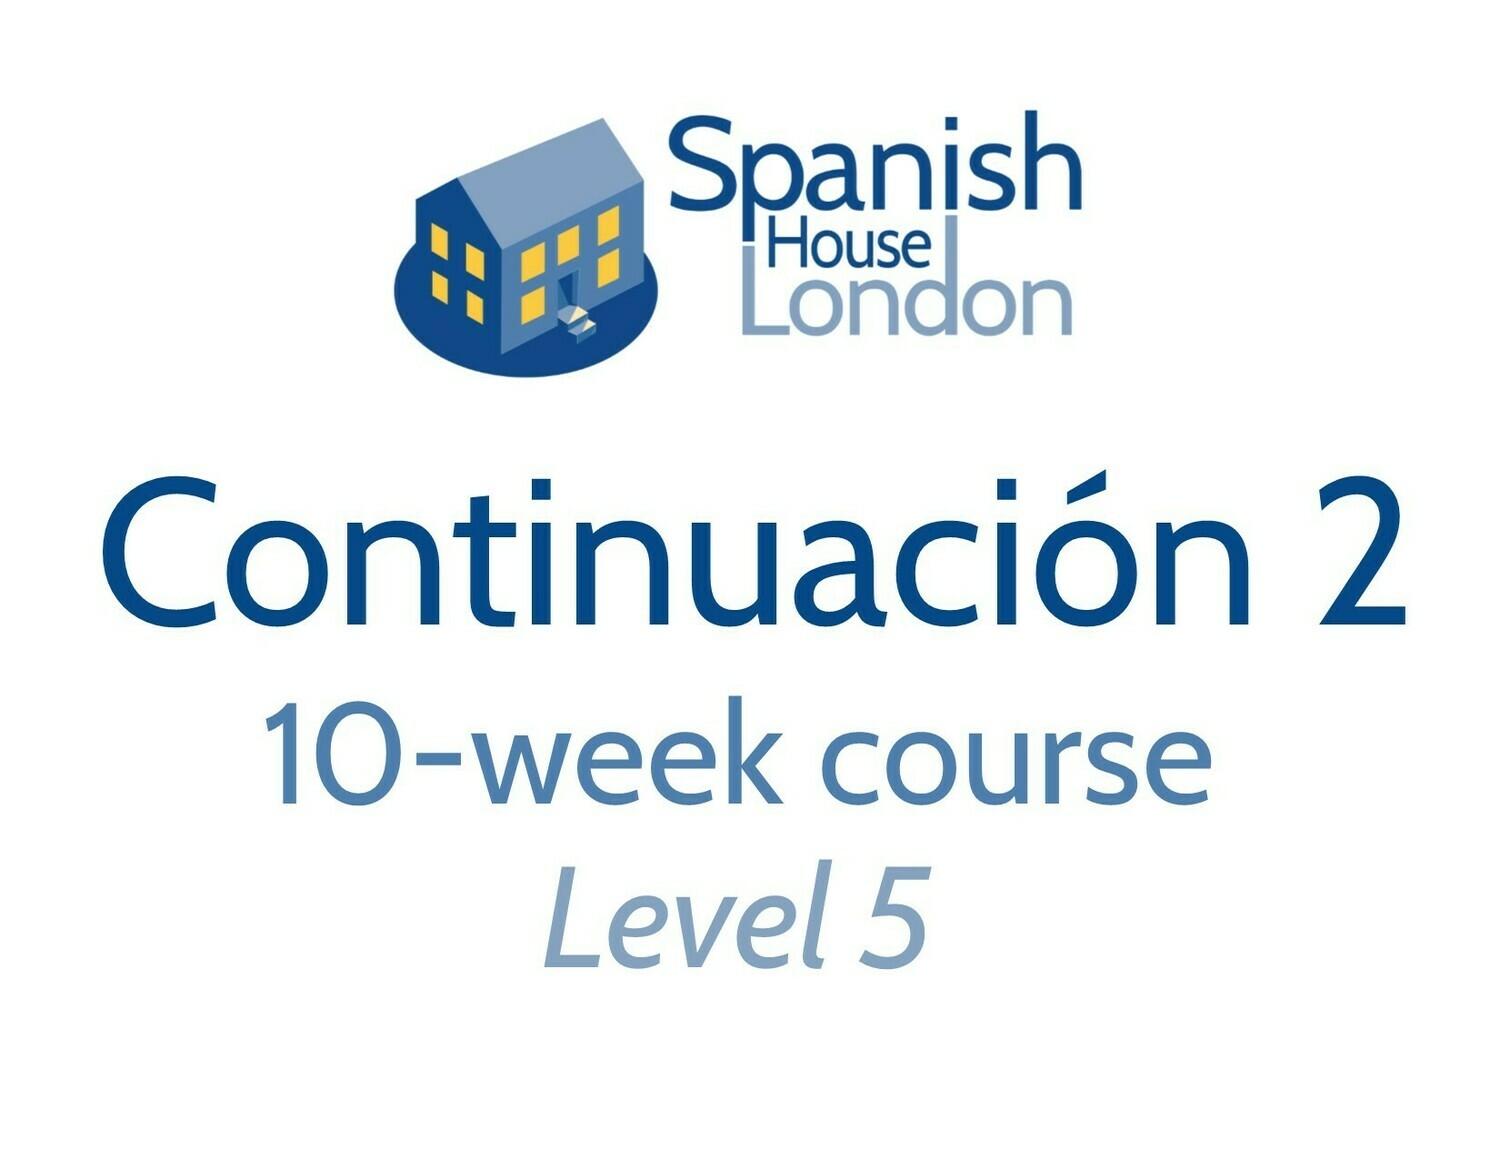 Continuacion 2 Course starting on 27th April at 6pm in Euston